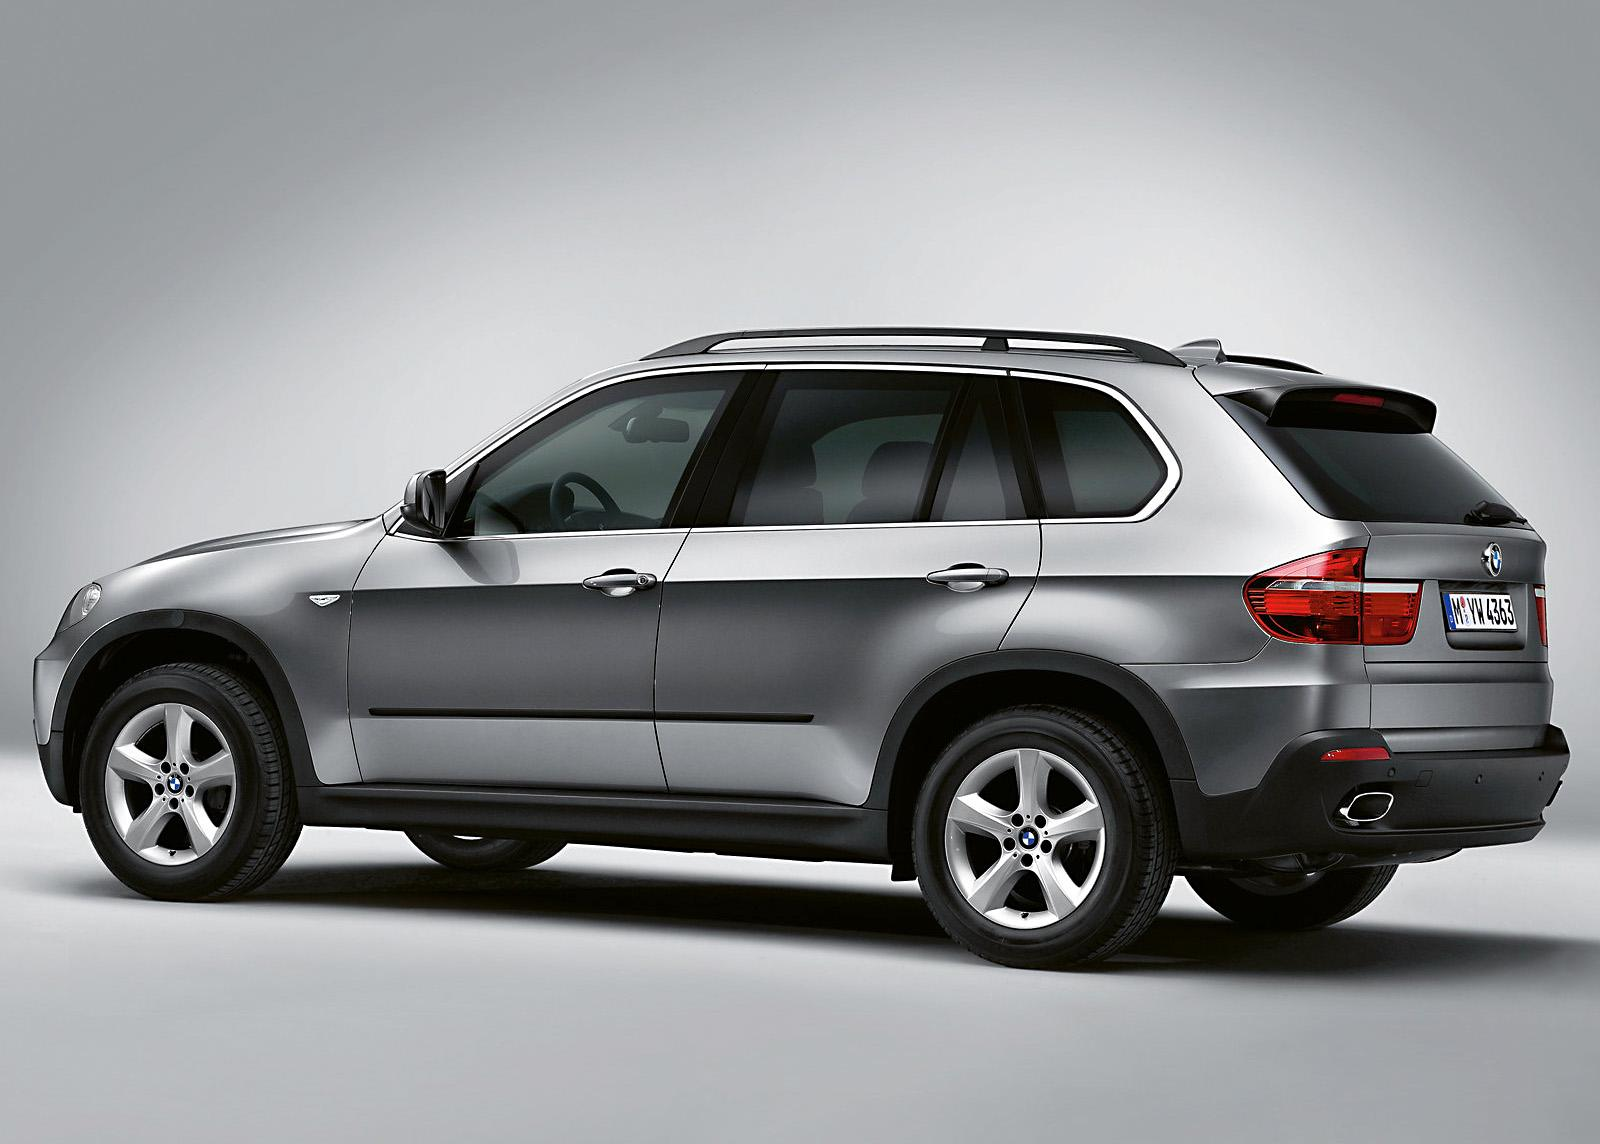 2008 BMW X5 Security News And Information